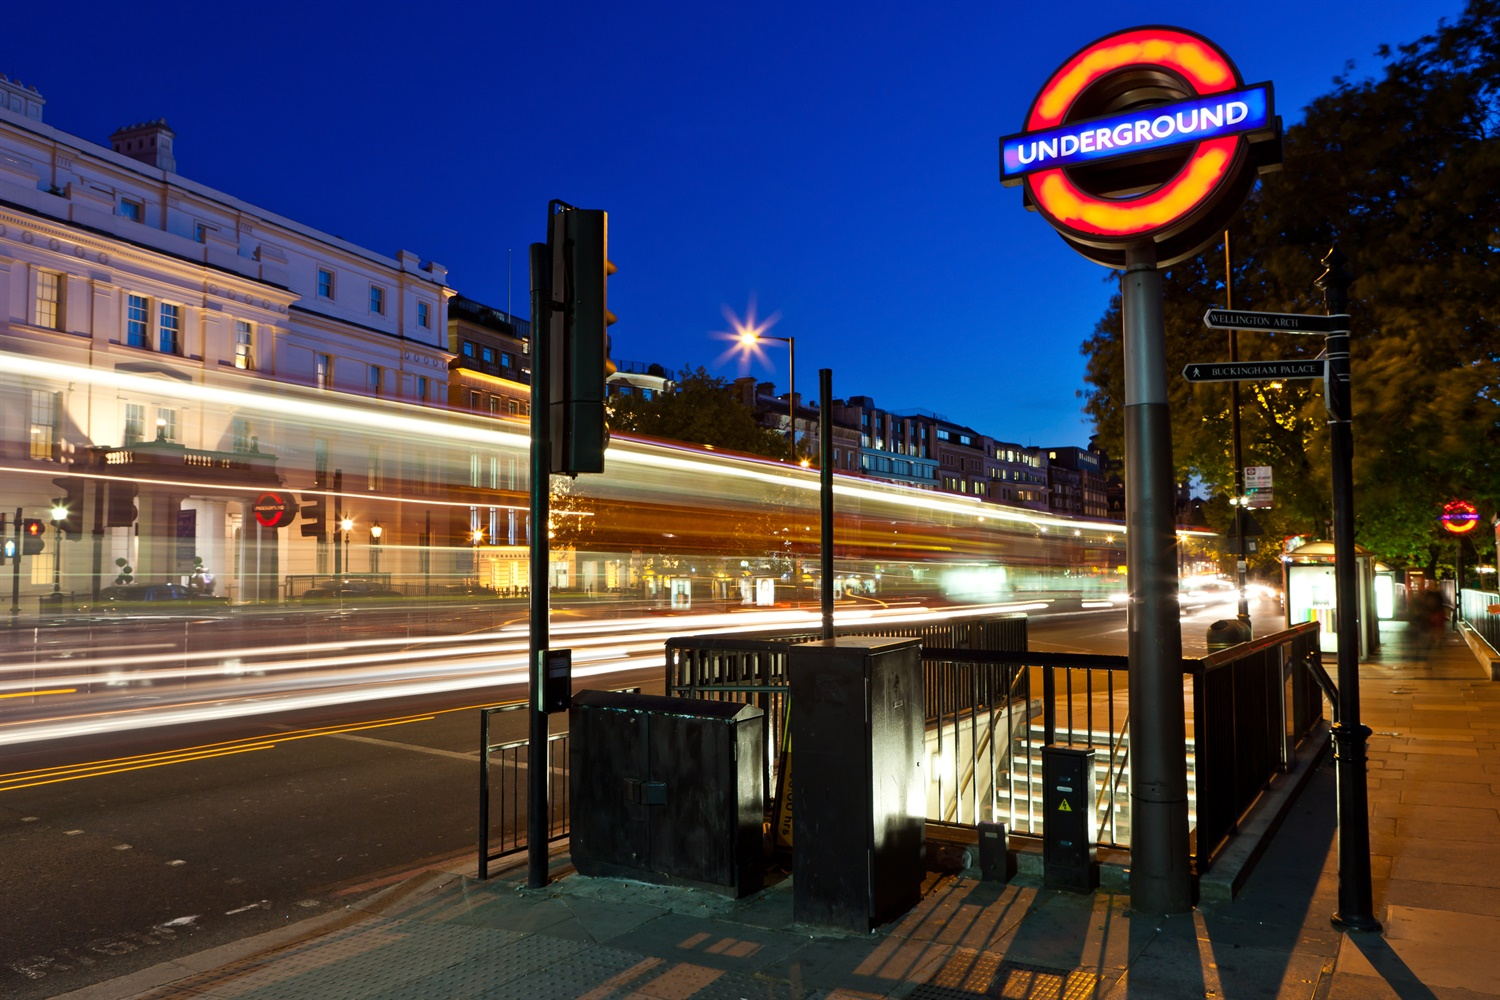 'Affordable' Hopper fares to be extended on London Tube network